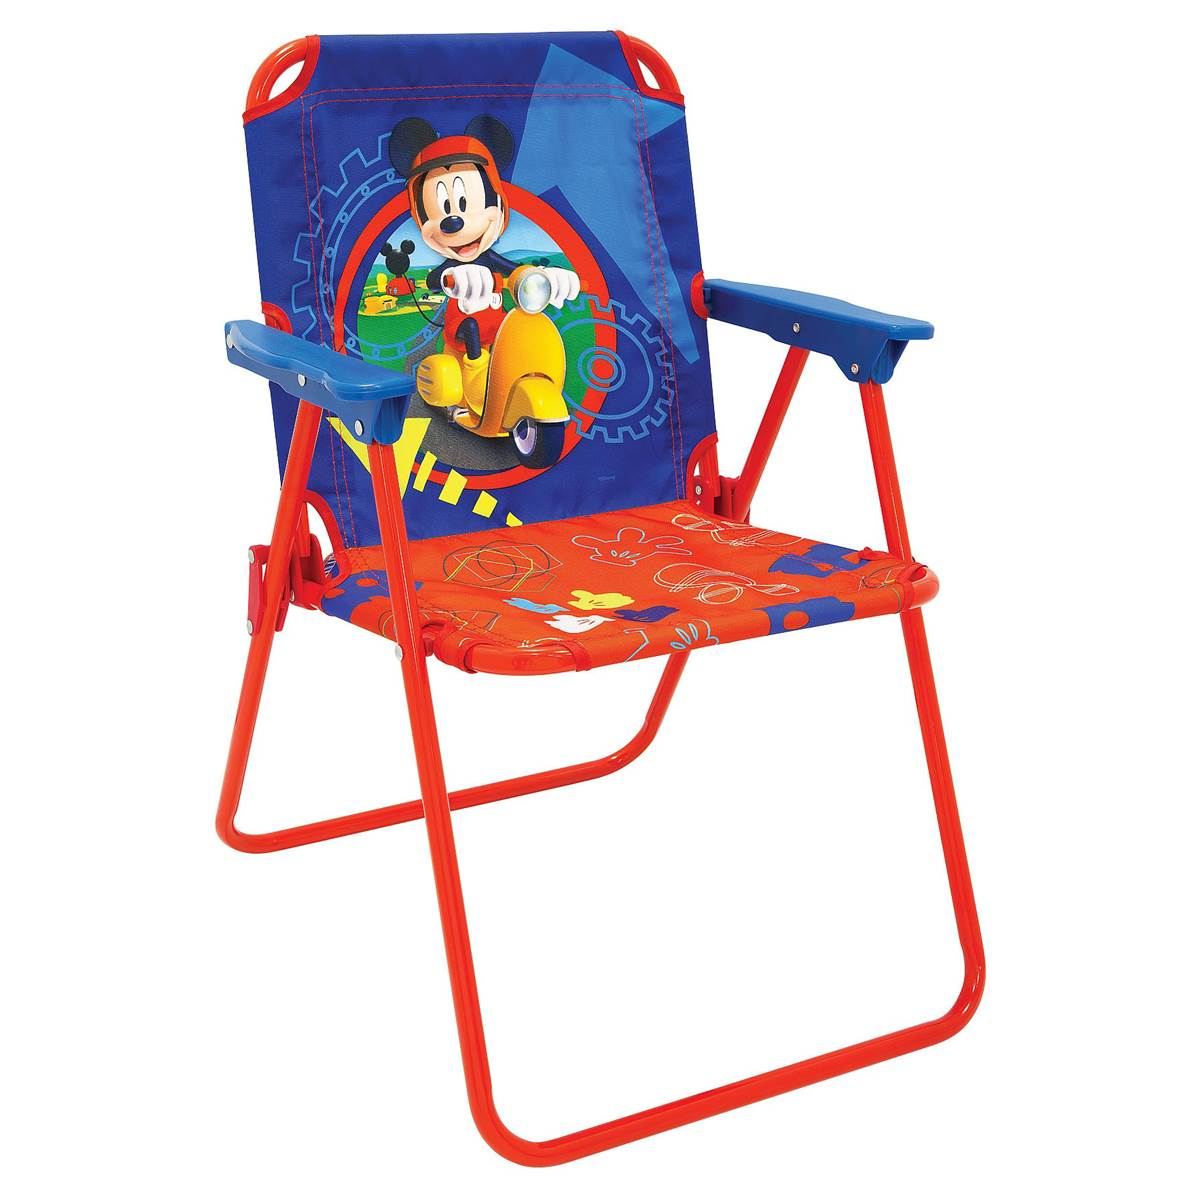 Disney Mickey Mouse Clubhouse Capers Fold-Up Chair